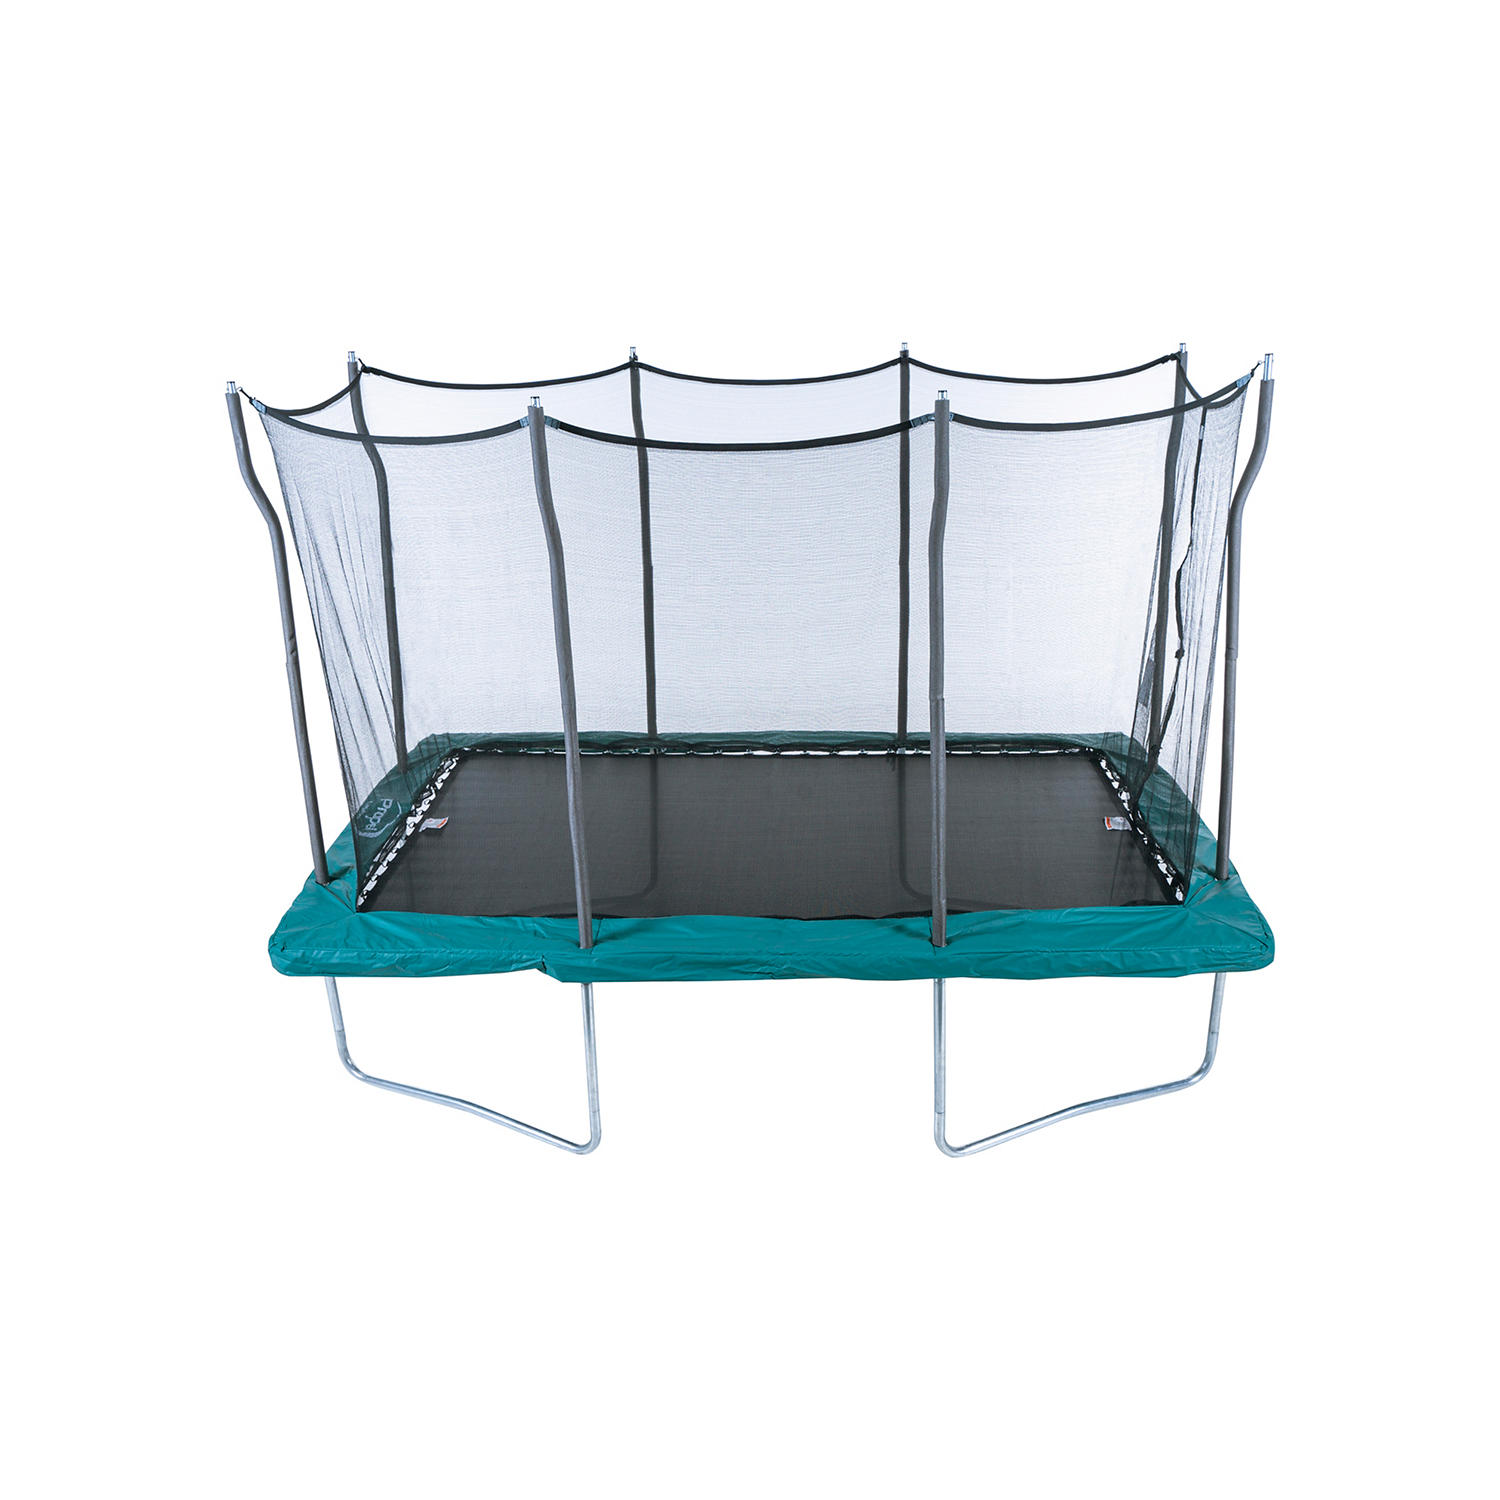 12′ x 8′ Rectangular Trampoline with Safety Enclosure